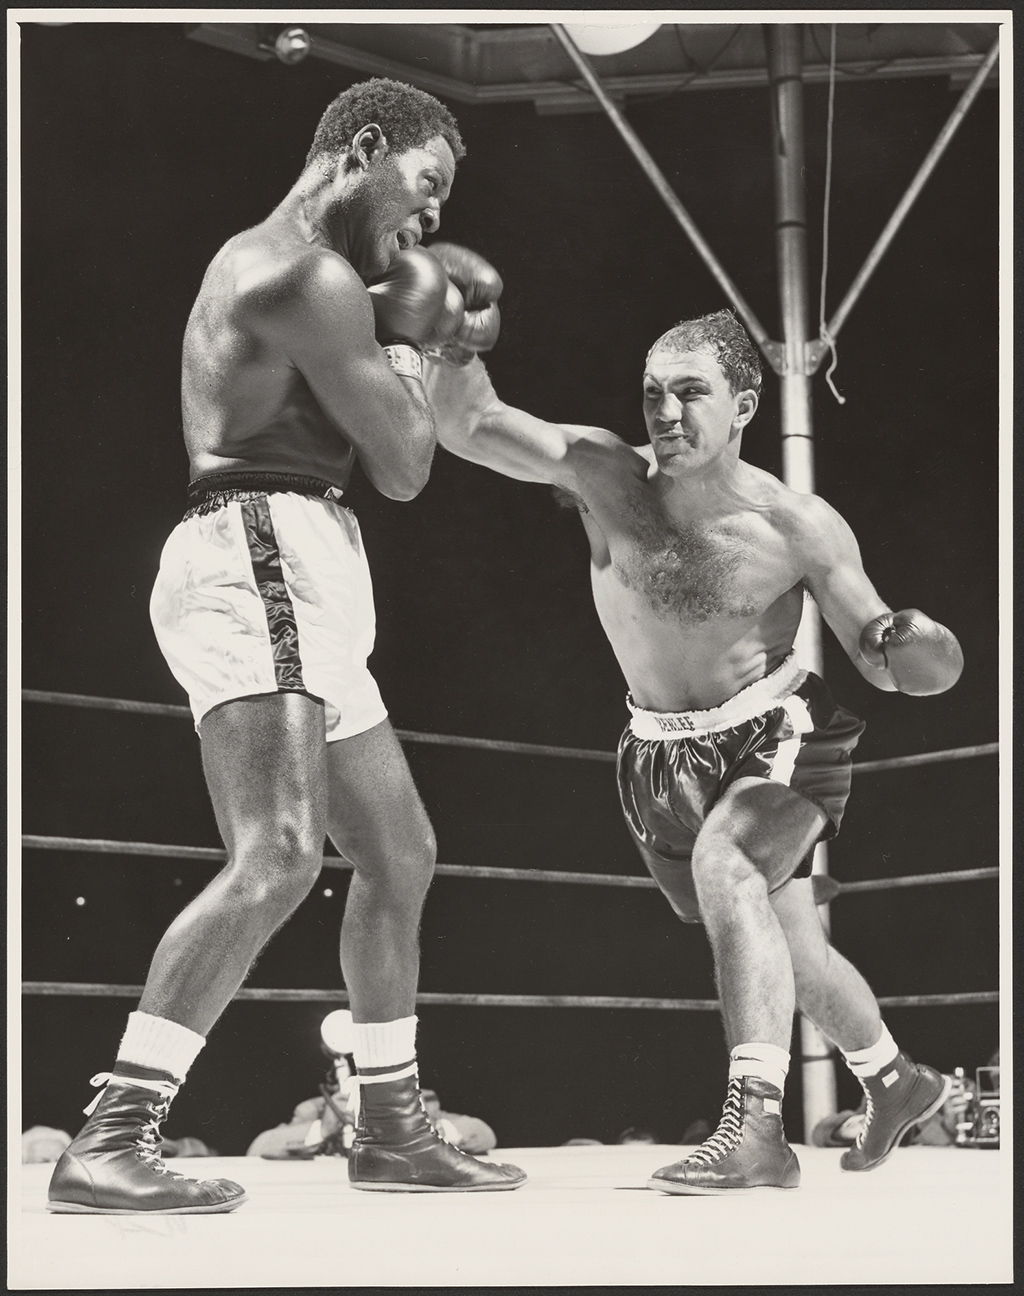 Charles, left, blocks a right cross from Marciano, right